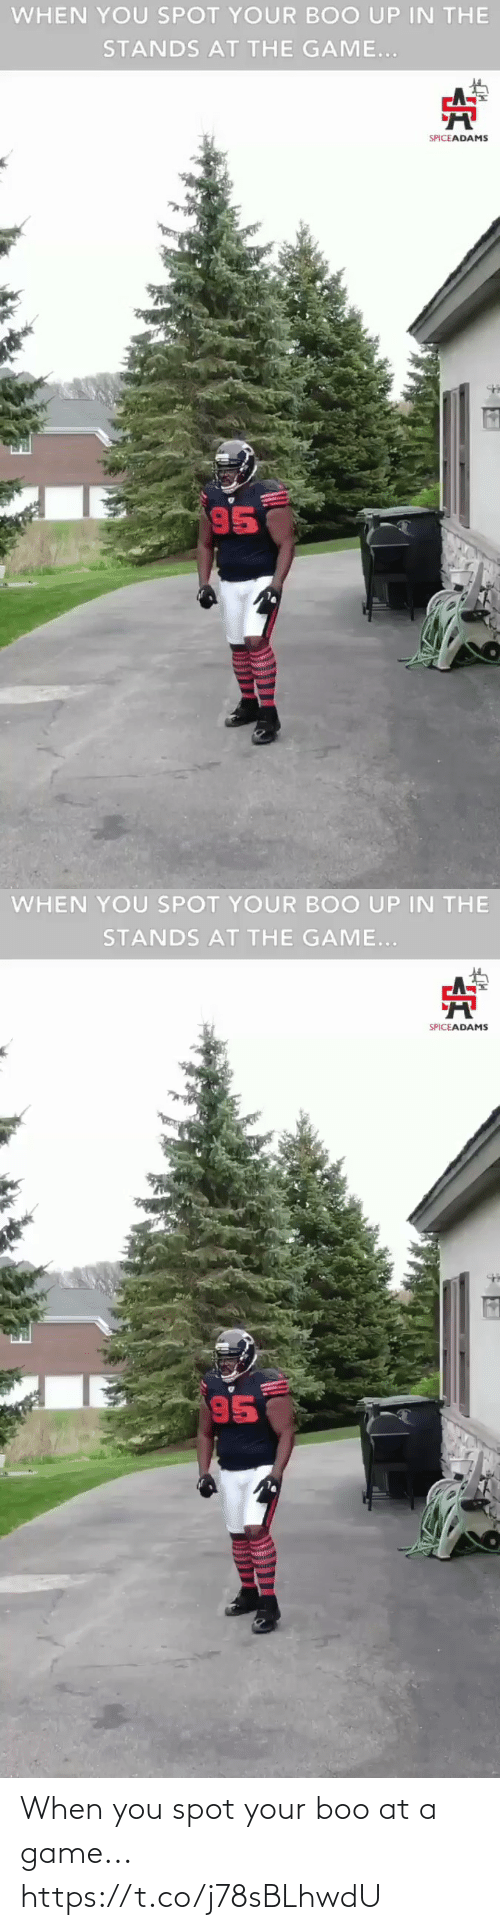 boo: When you spot your boo at a game... https://t.co/j78sBLhwdU